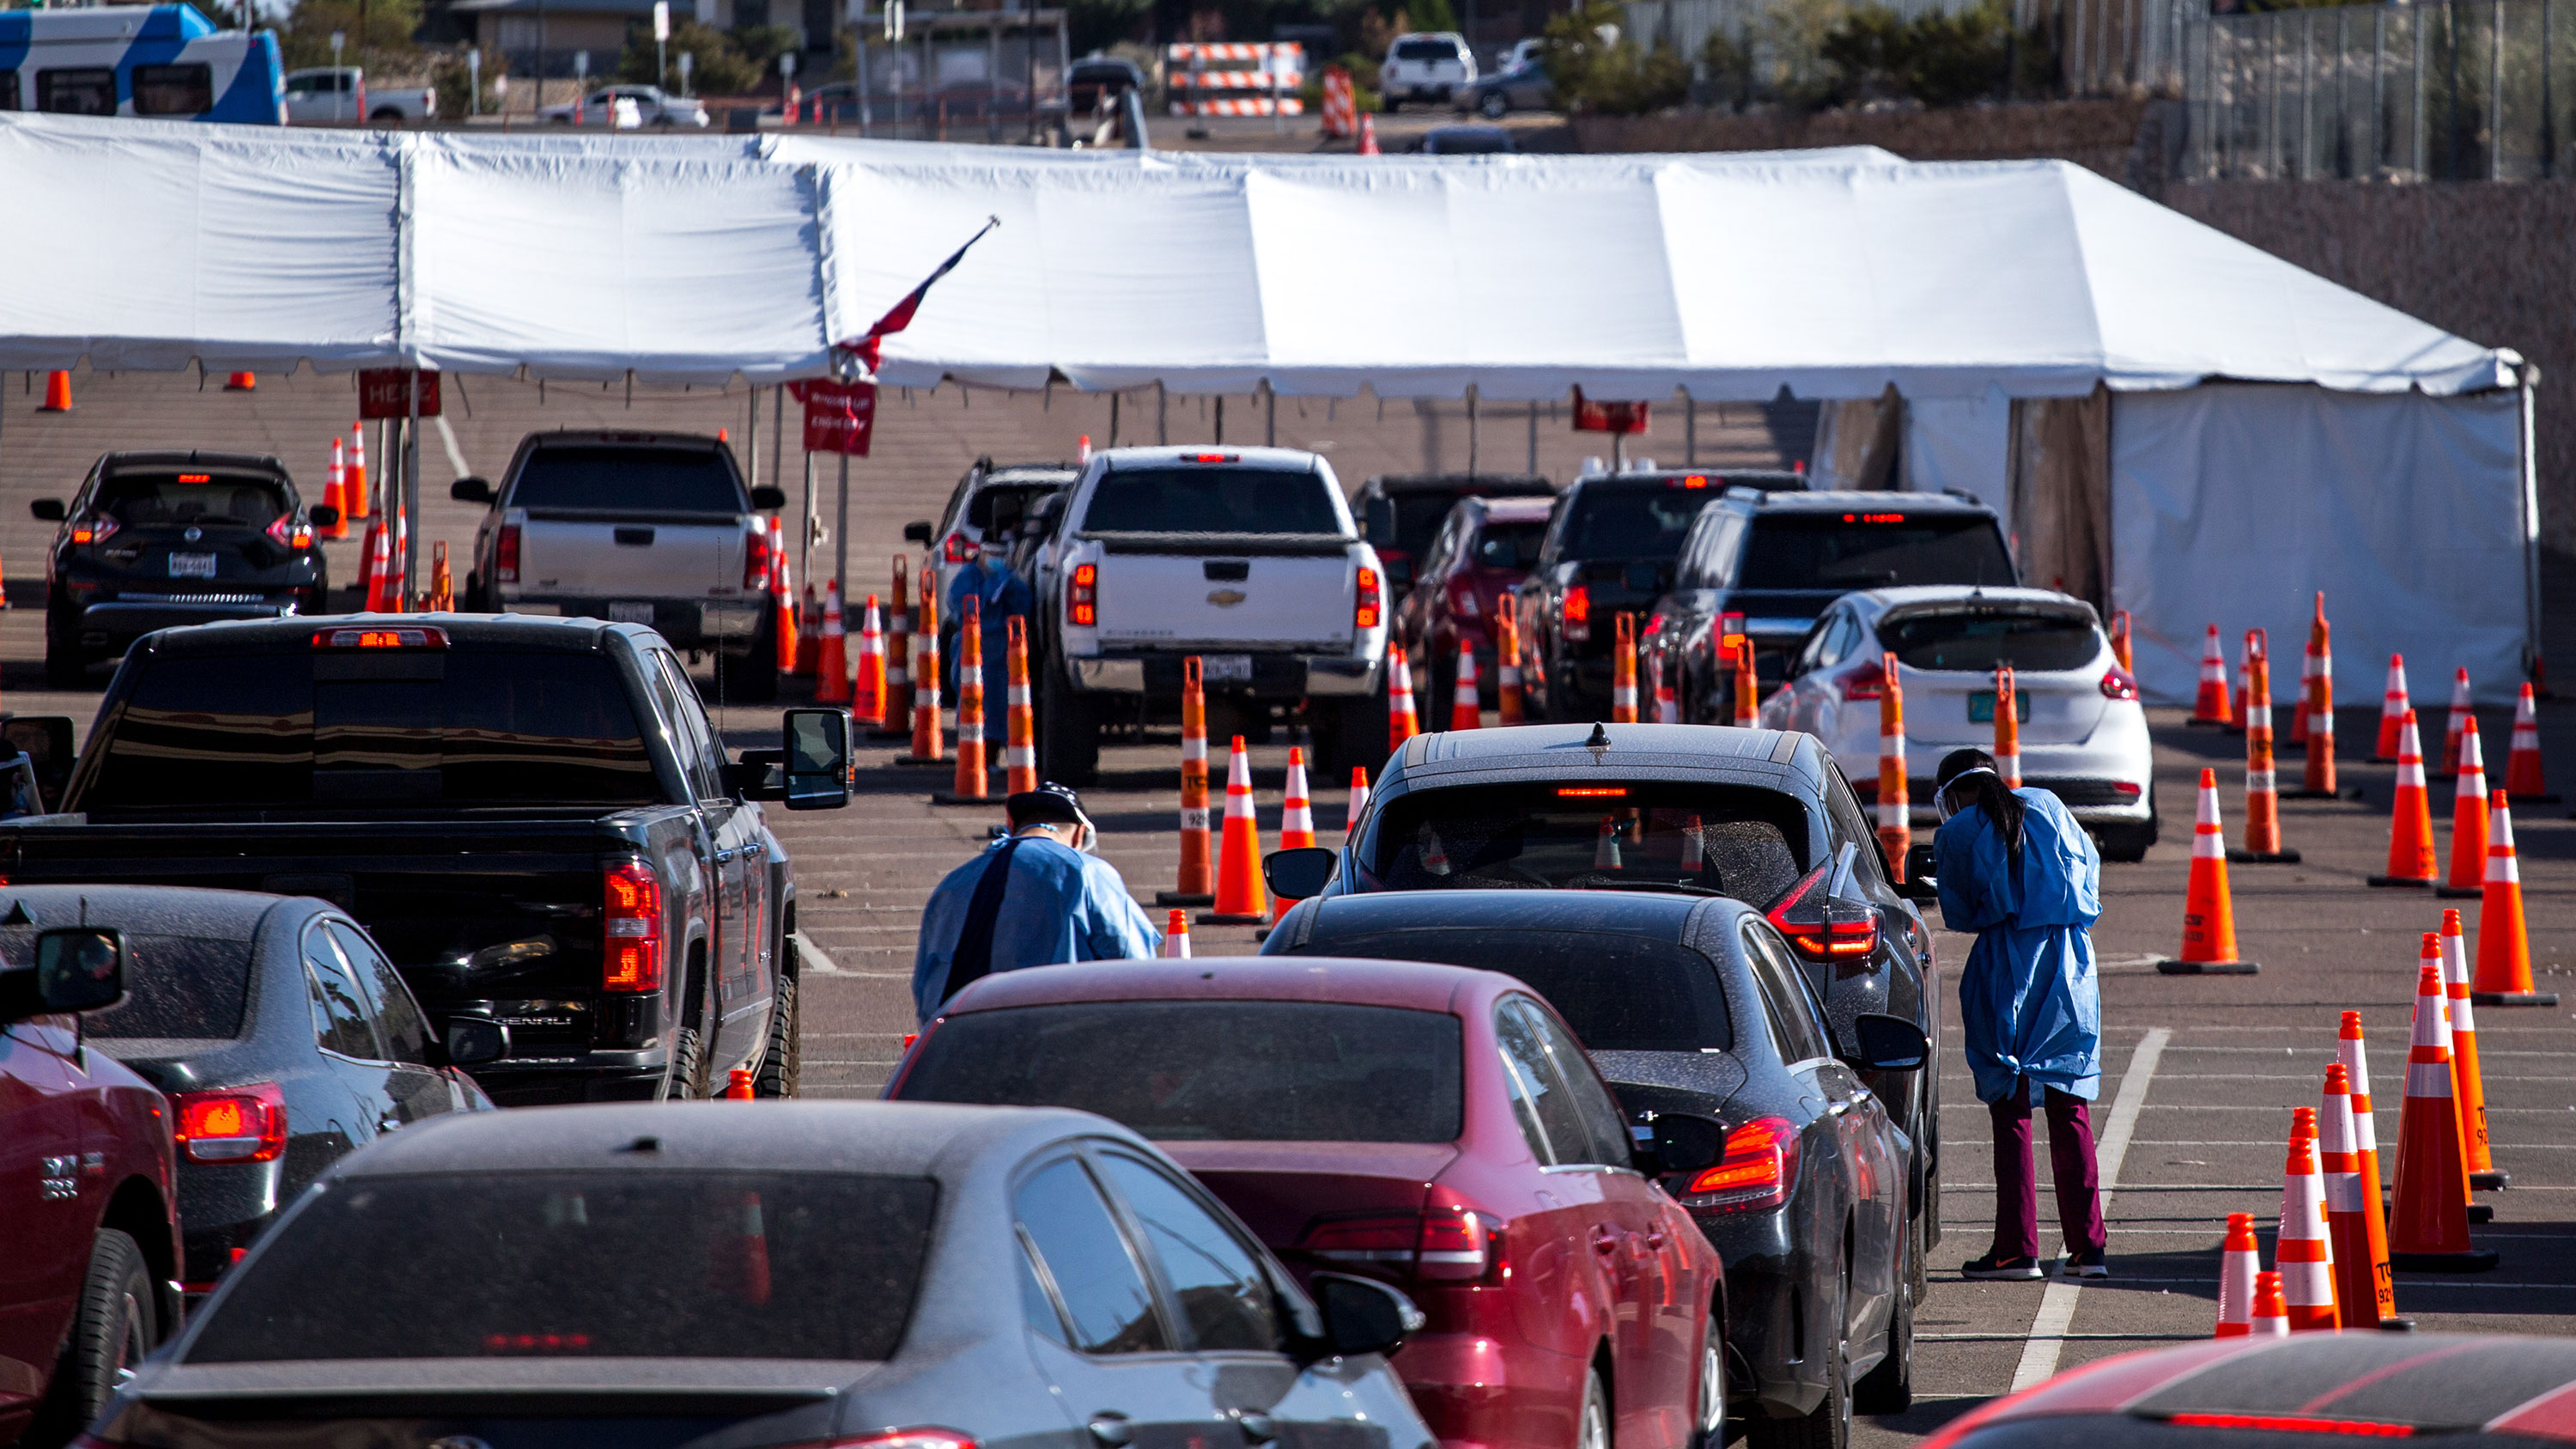 Medical workers register motorists at a Covid-19 drive-thru testing site in El Paso, Texas, on Monday, November 9.